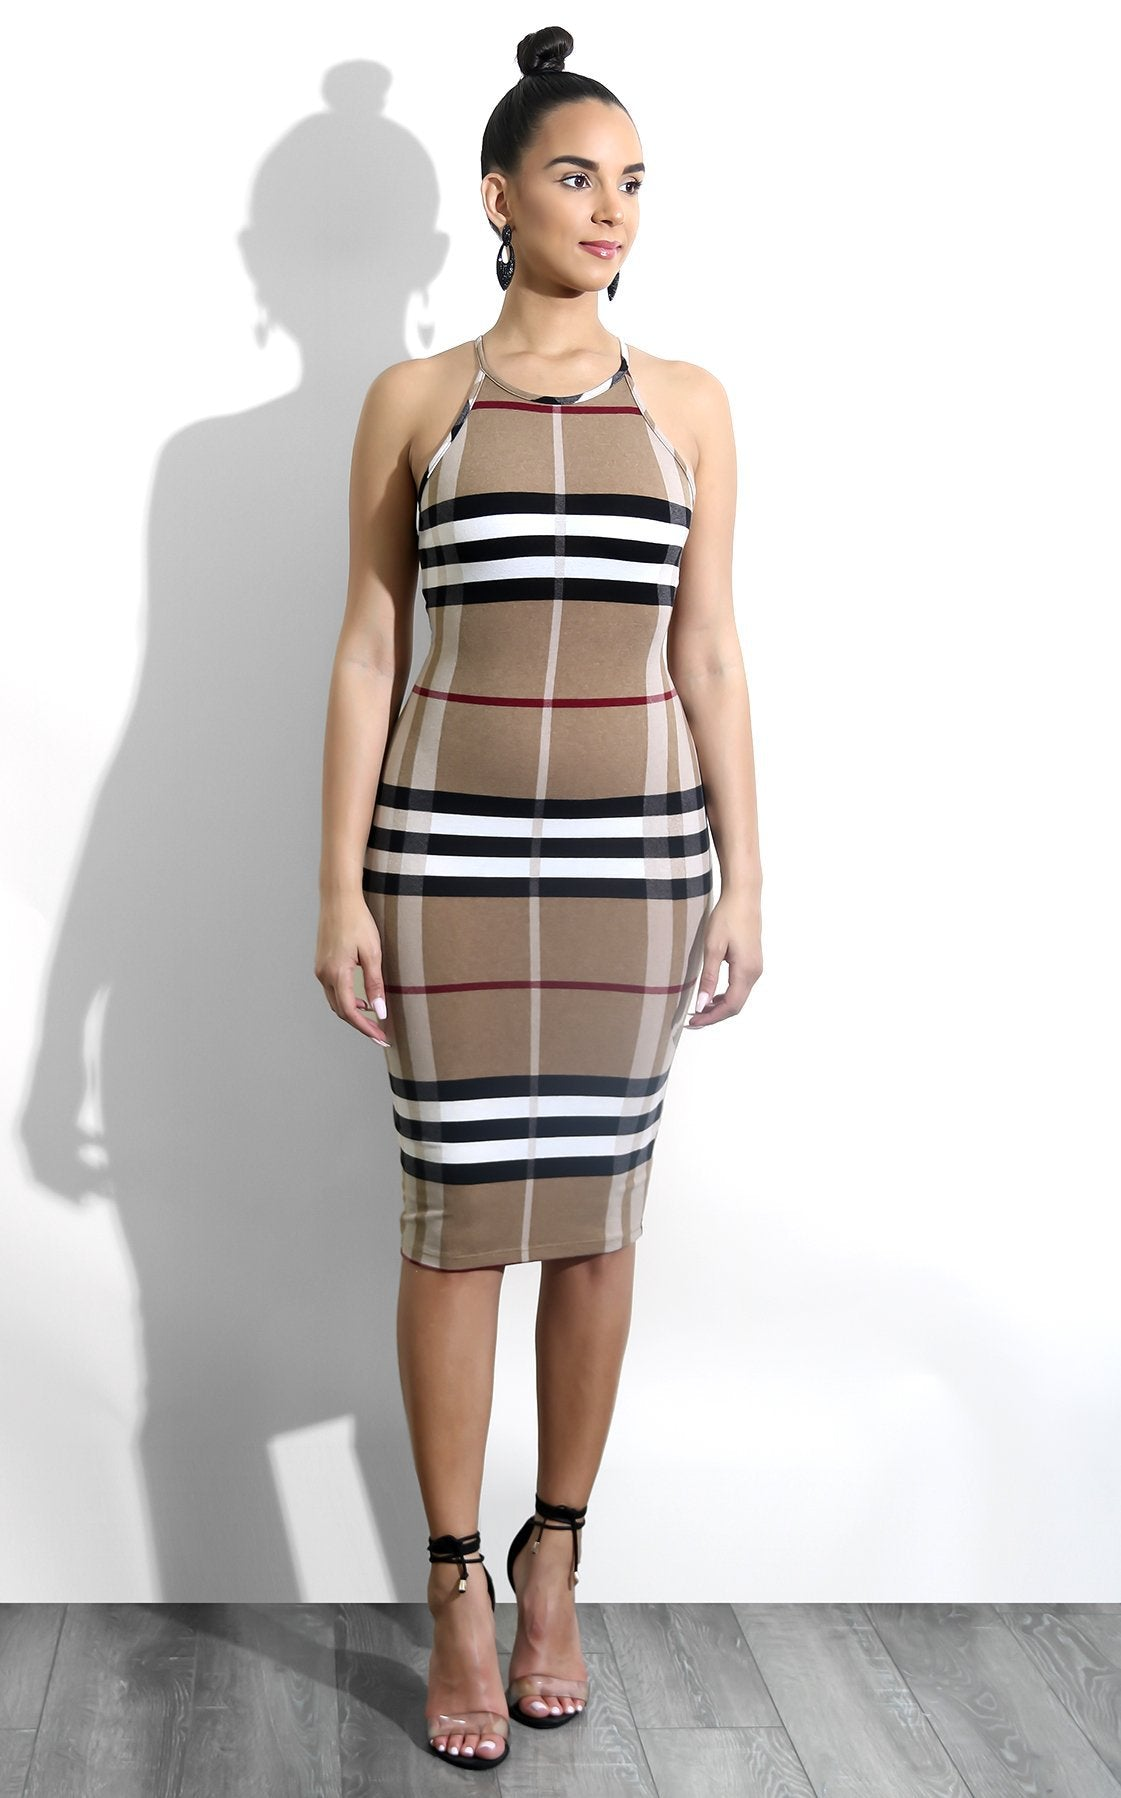 Lavish Grids Plaid Style Sleeveless Her Fashion Bodycon Party Dress